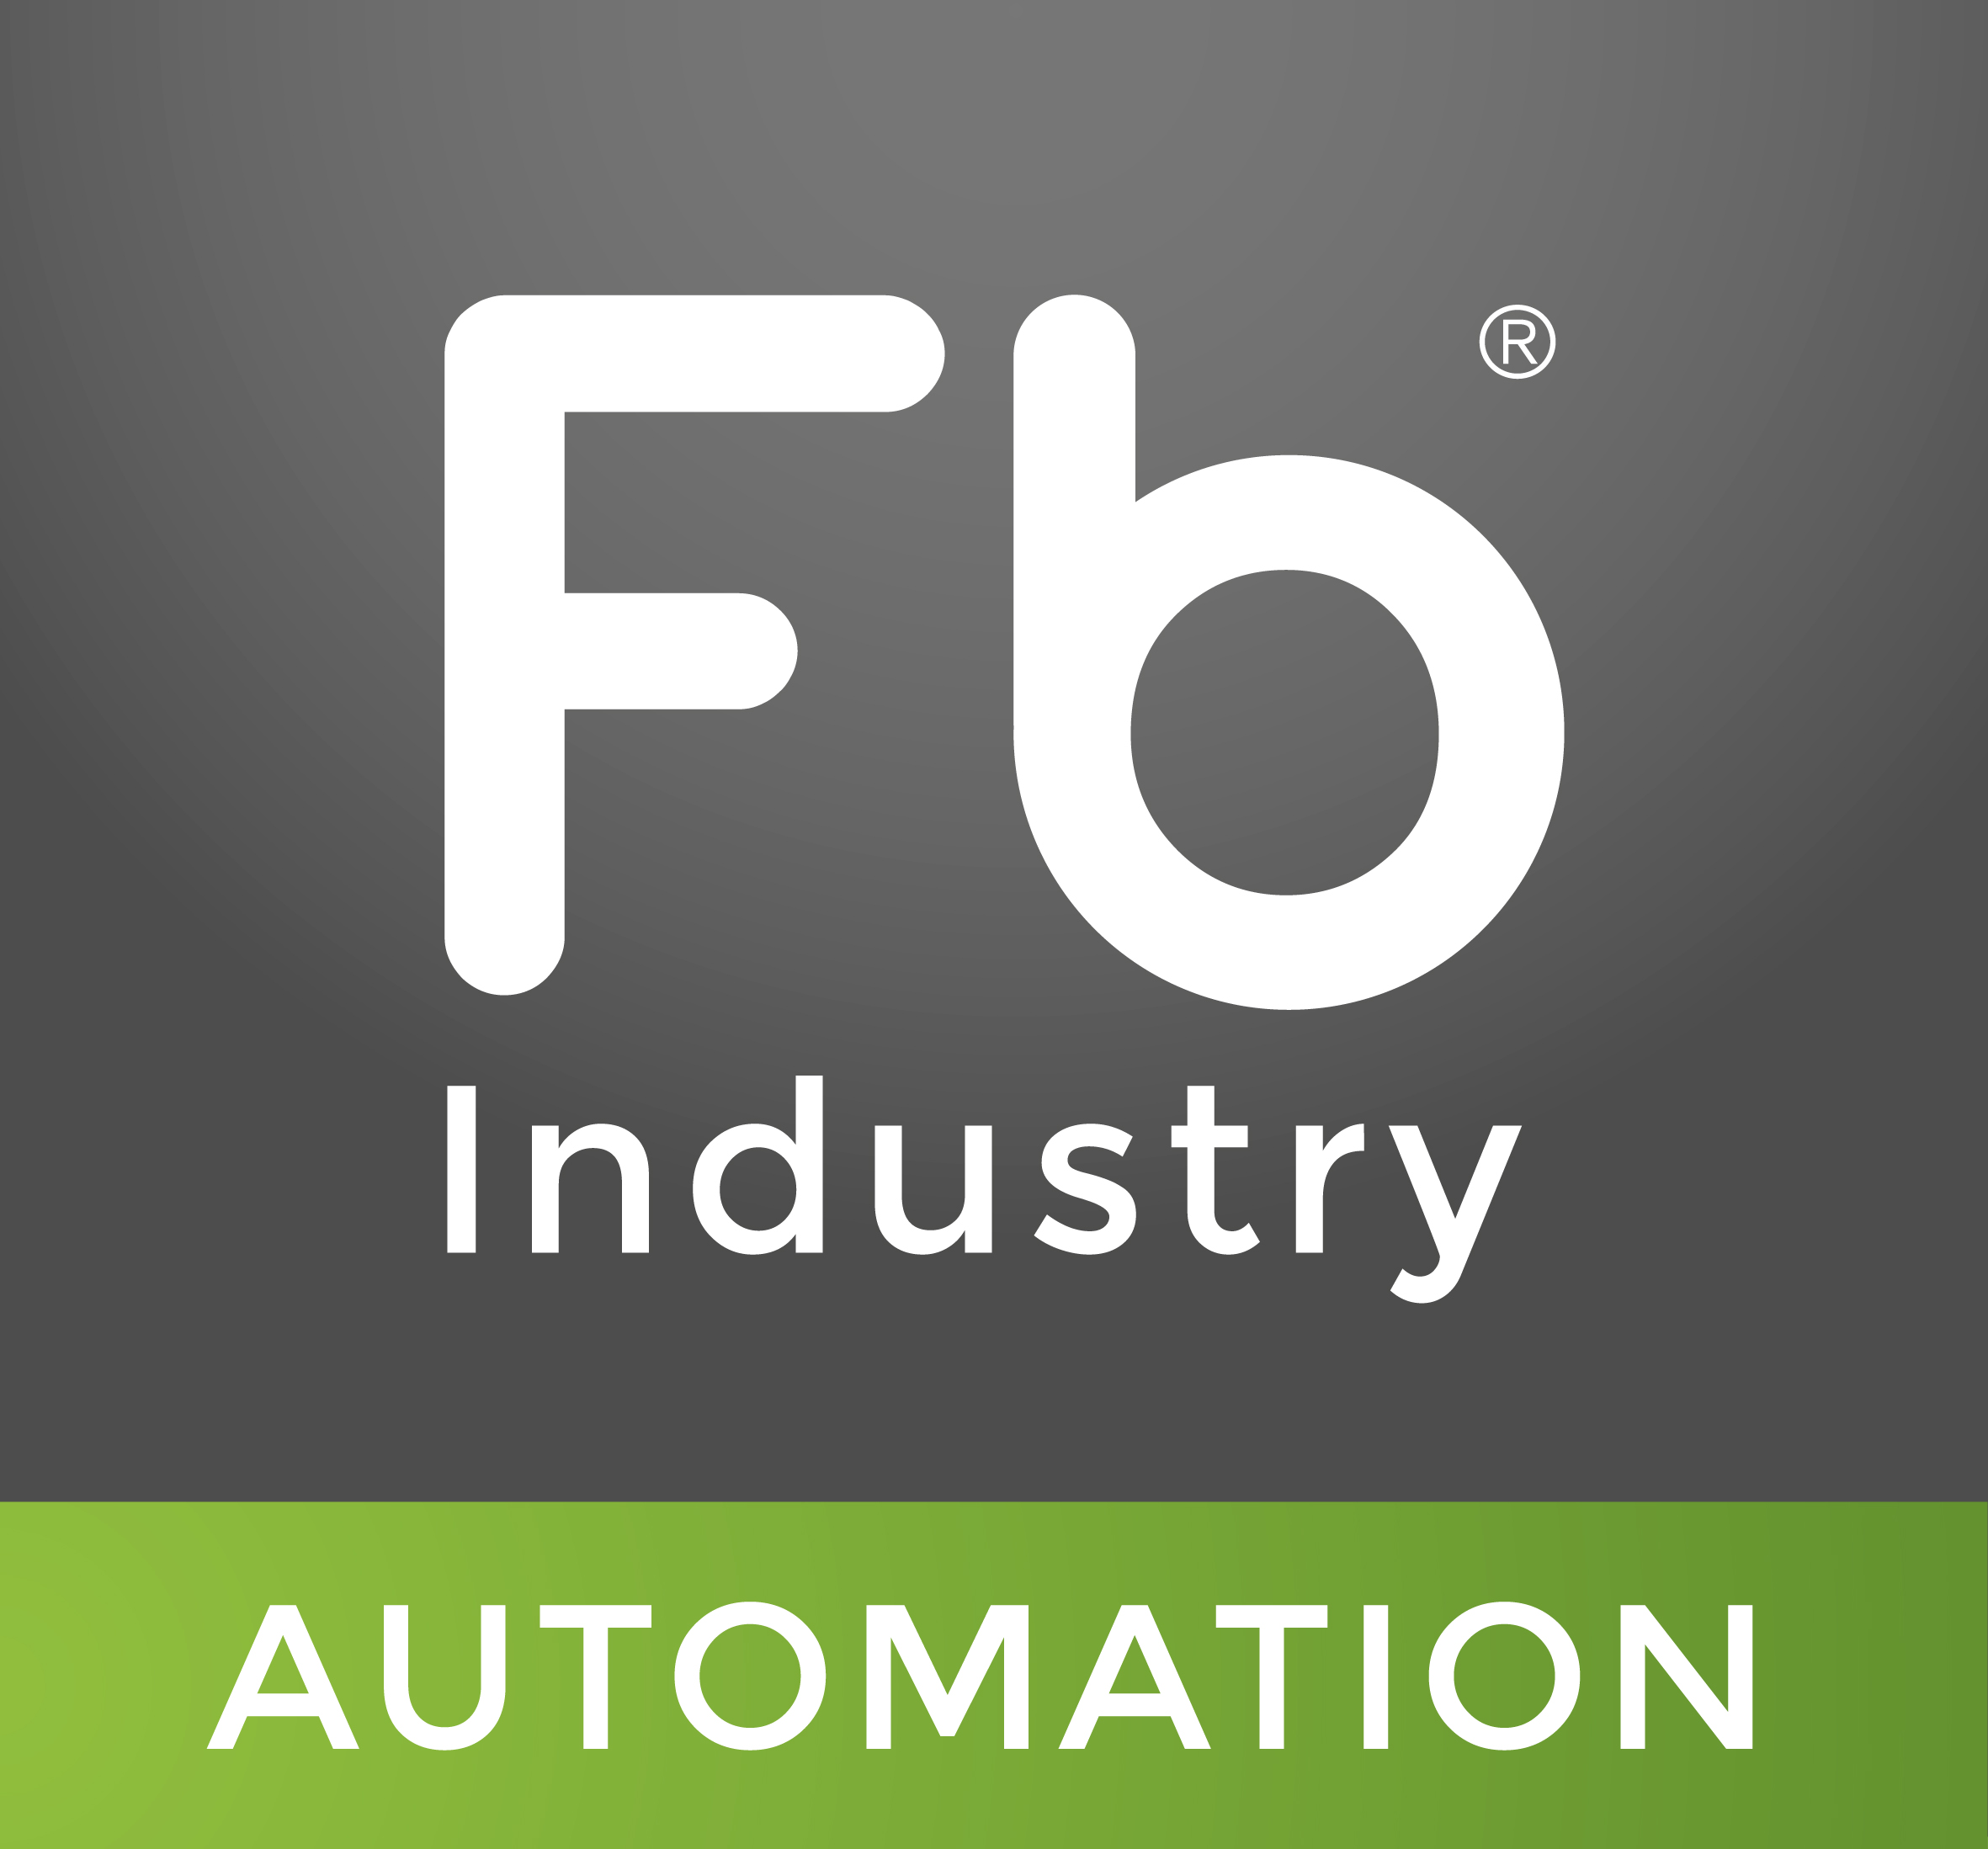 Fb Industry Automation GmbH